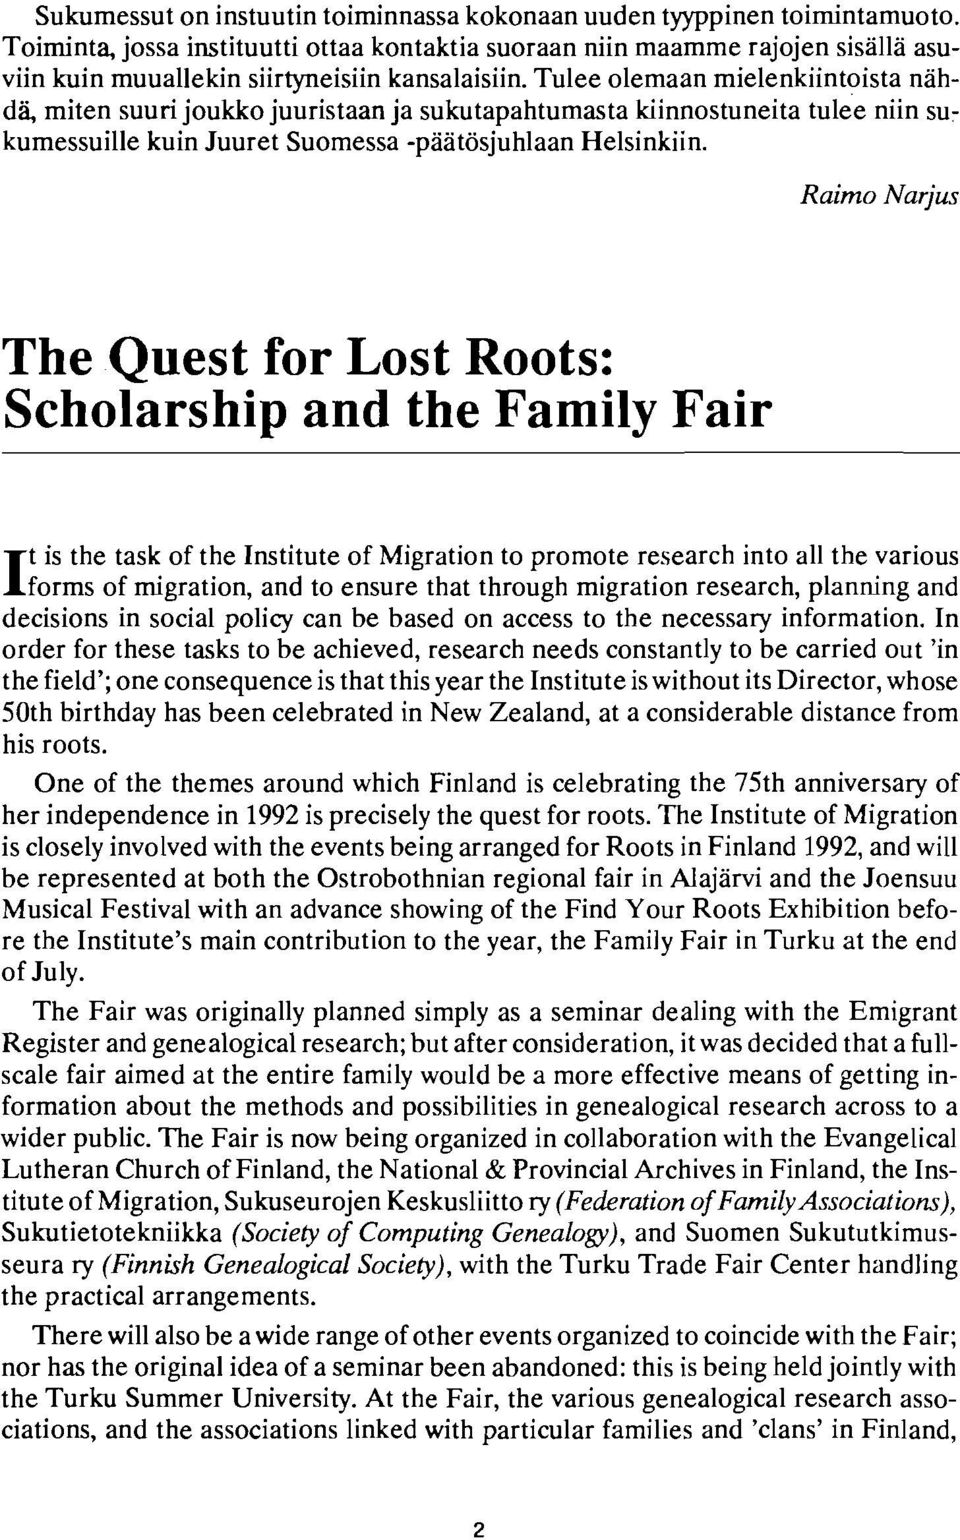 Raim The Quest for Lost Roots: Scholarship and the Family Fair 1t is the task of the Institute of Migration to promote research into all the lforms of migration, and to ensure that through migration